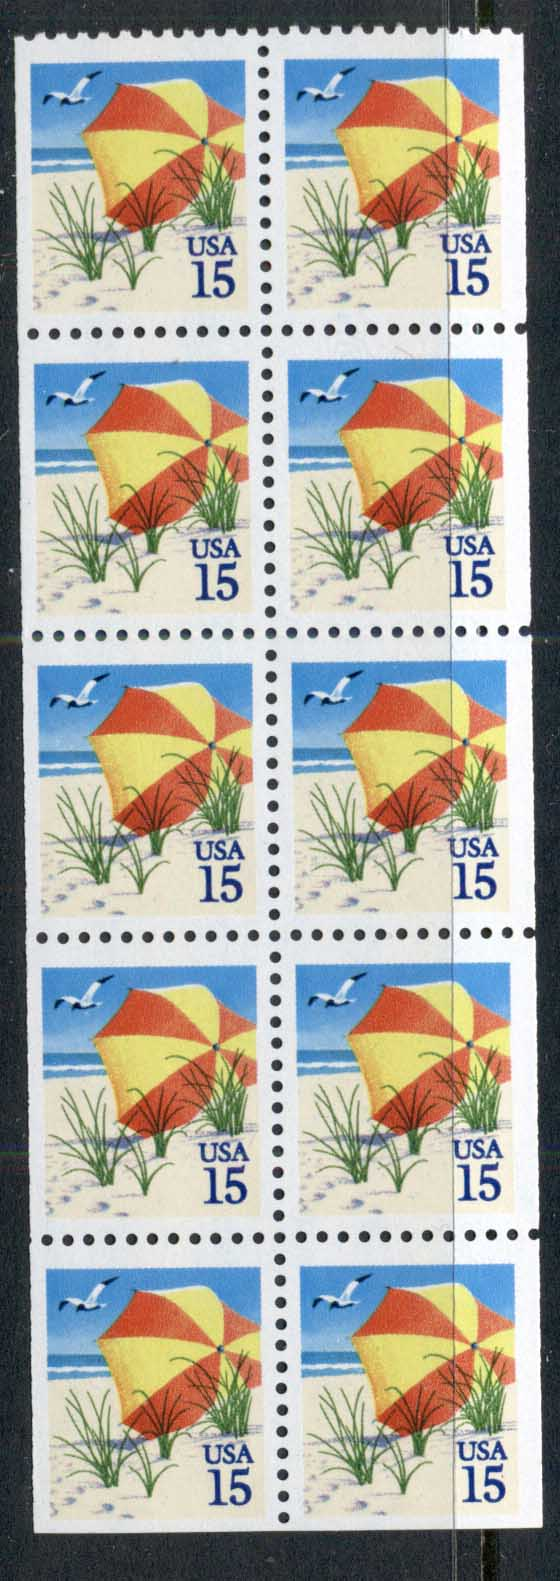 USA 1990 Sc#2443 Beach Umbrella Booklet pane MUH